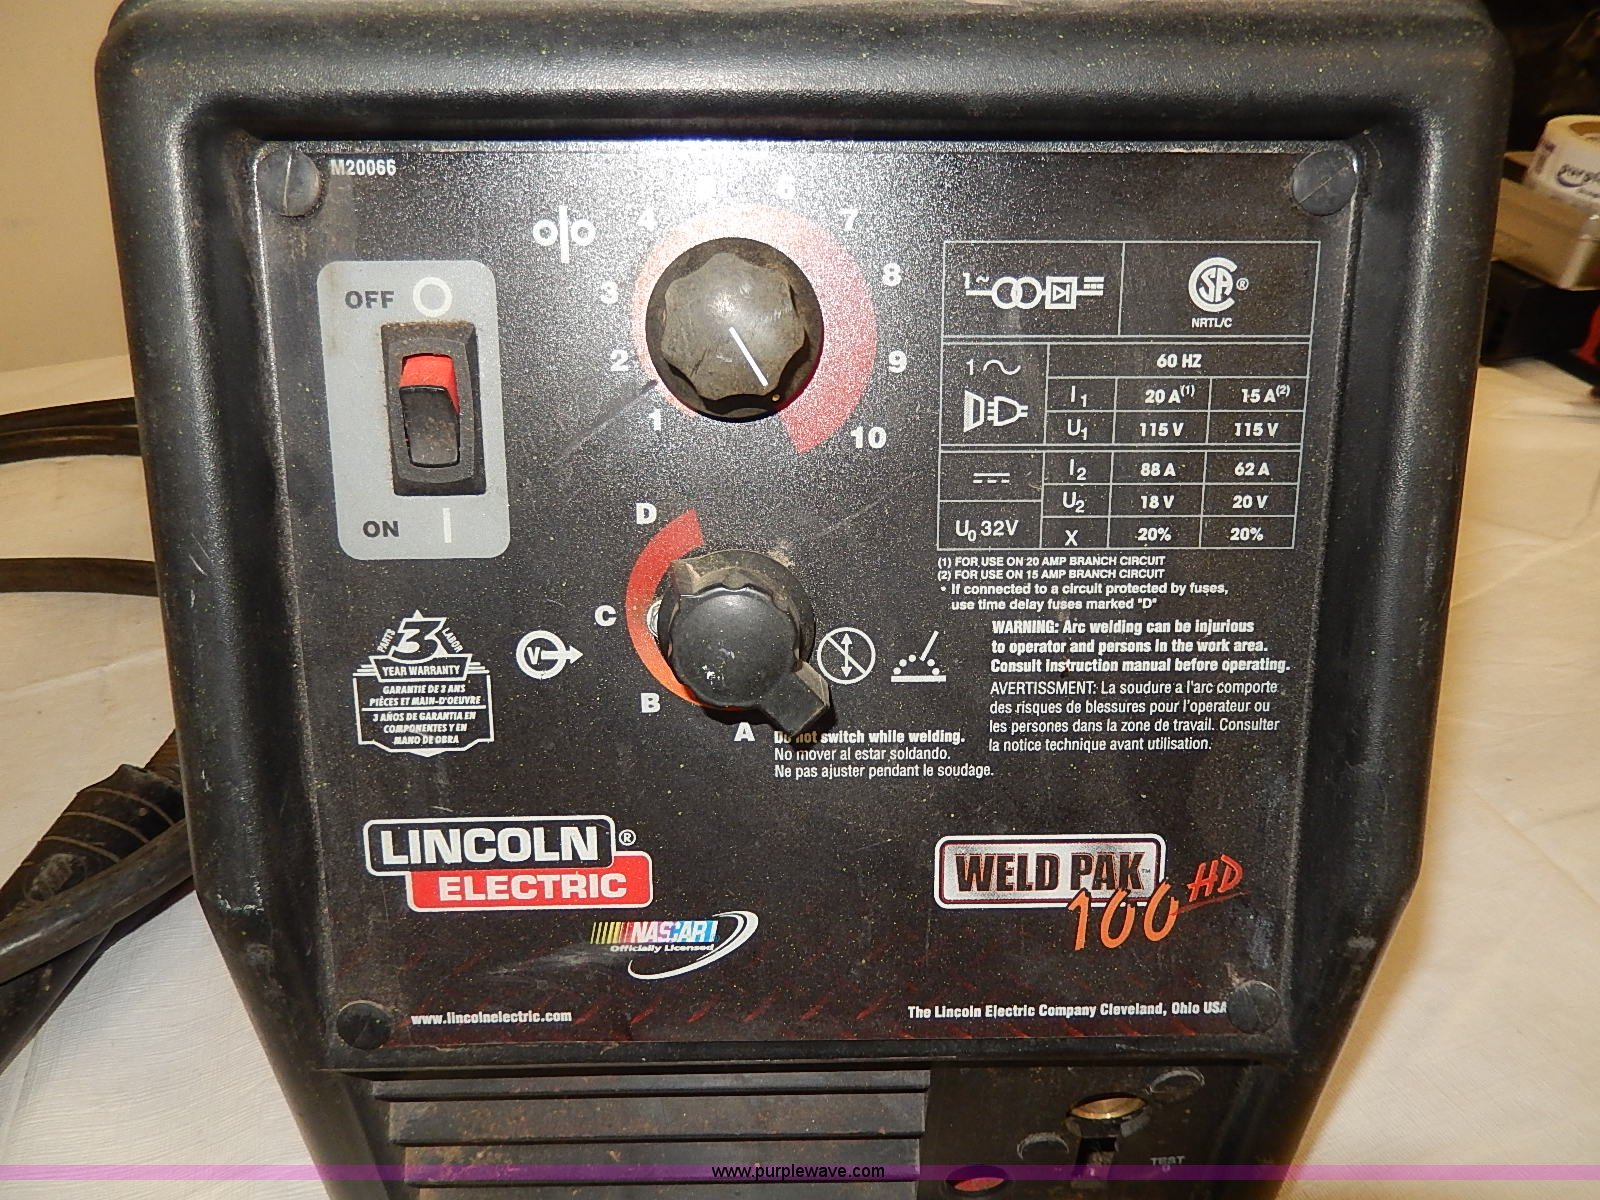 ... Lincoln Electric Weld Pak 100HD Full size in new window ...